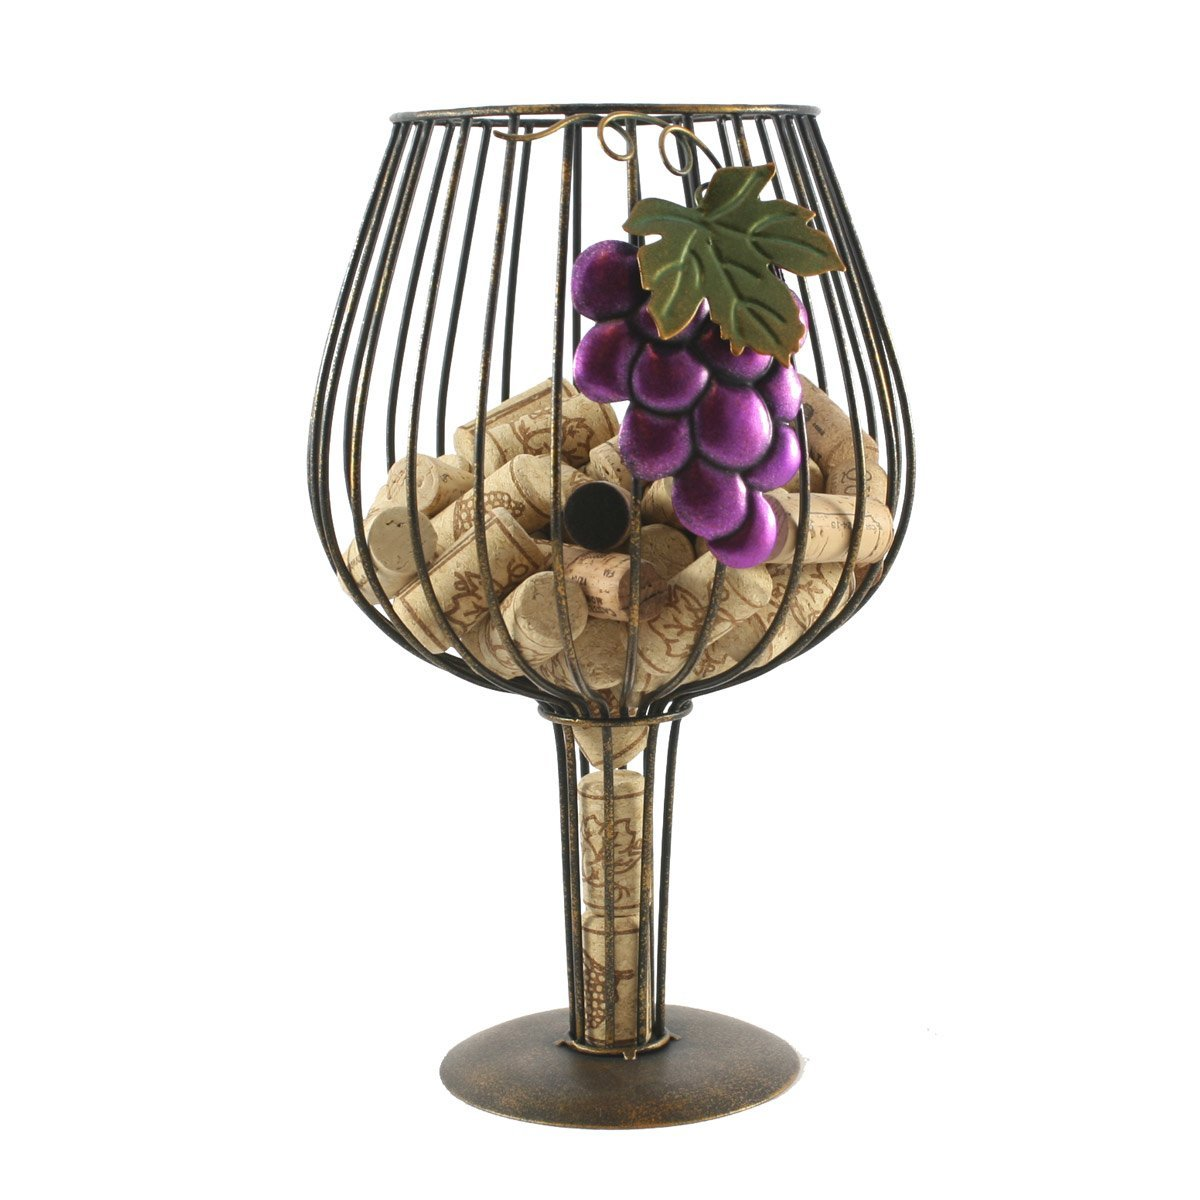 Big Wine Glass Cork Holder for Wine Lovers By Thirteen Chefs by Thirteen Chefs